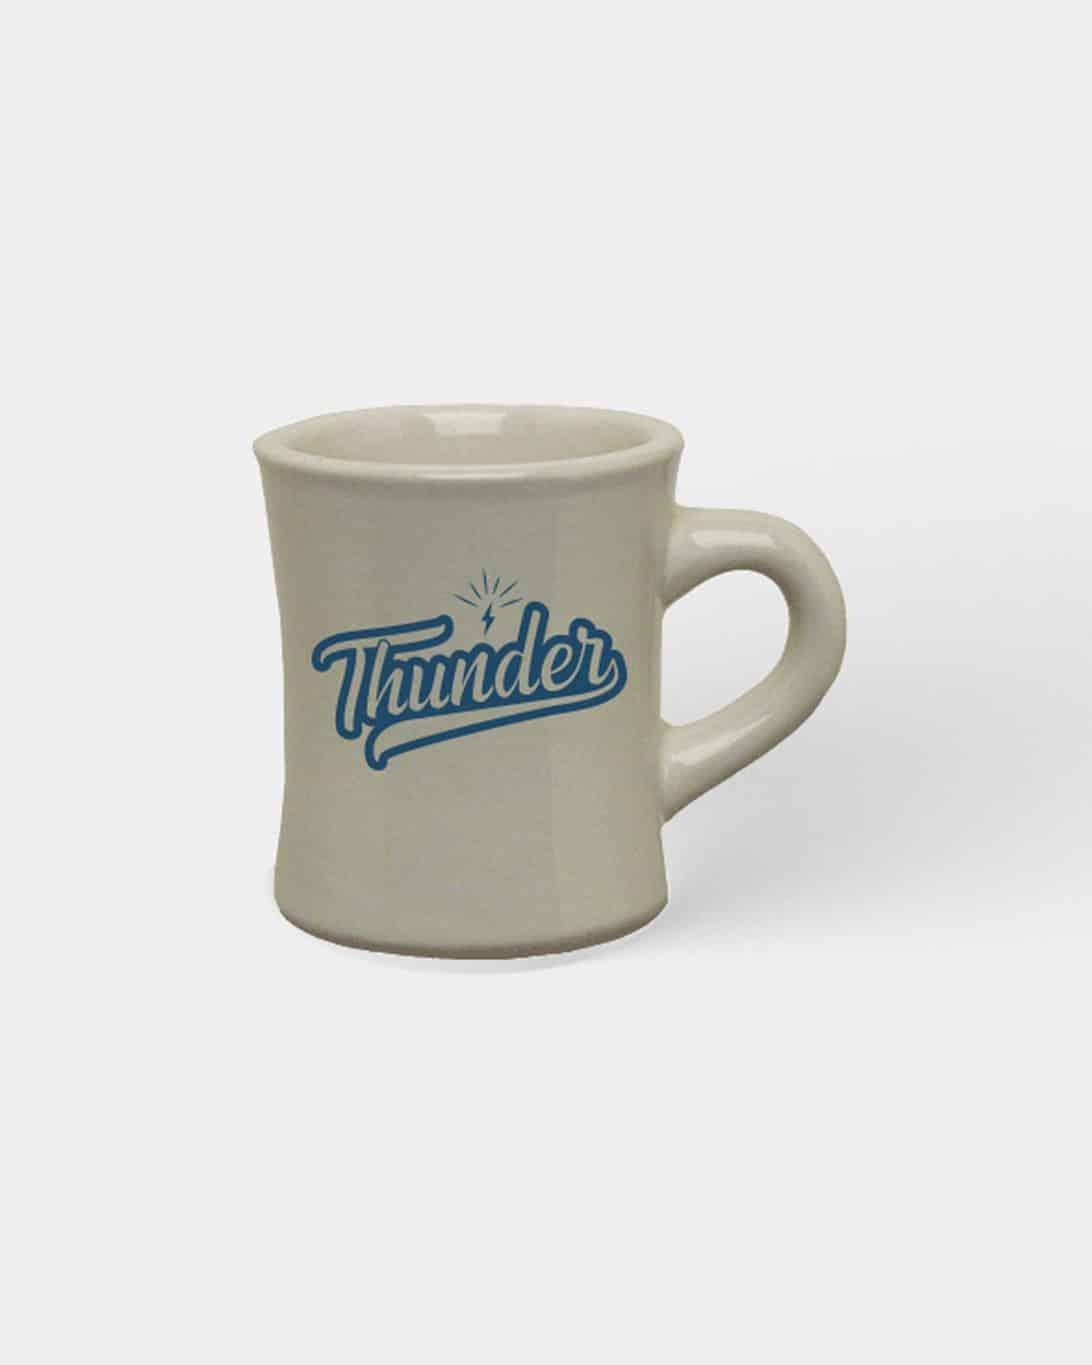 A military style mug that says Thunder on the front in cursive, blue type